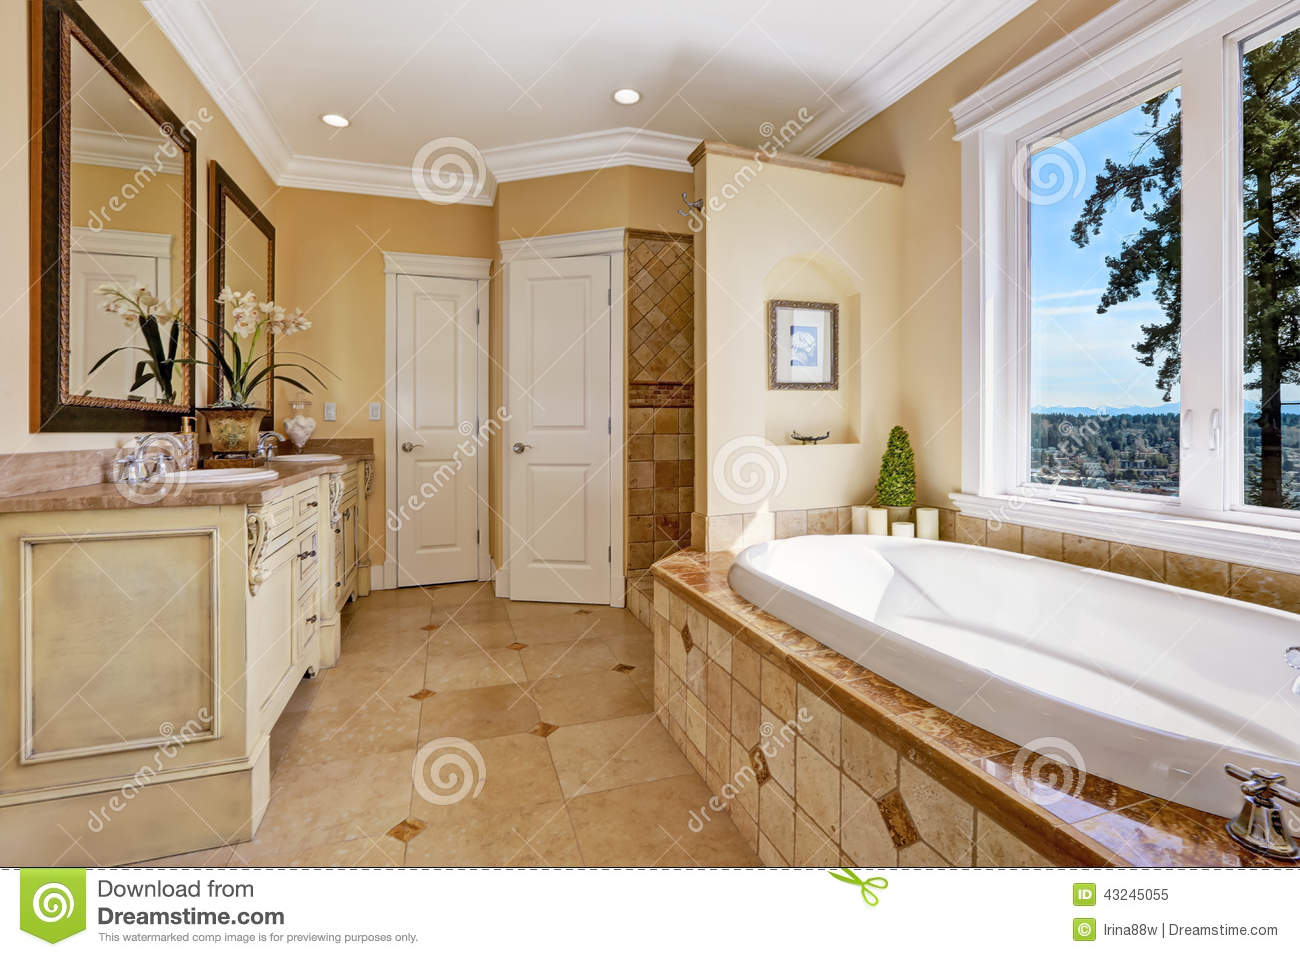 Soft Tones Bathroom Interior In Luxury House Stock Image